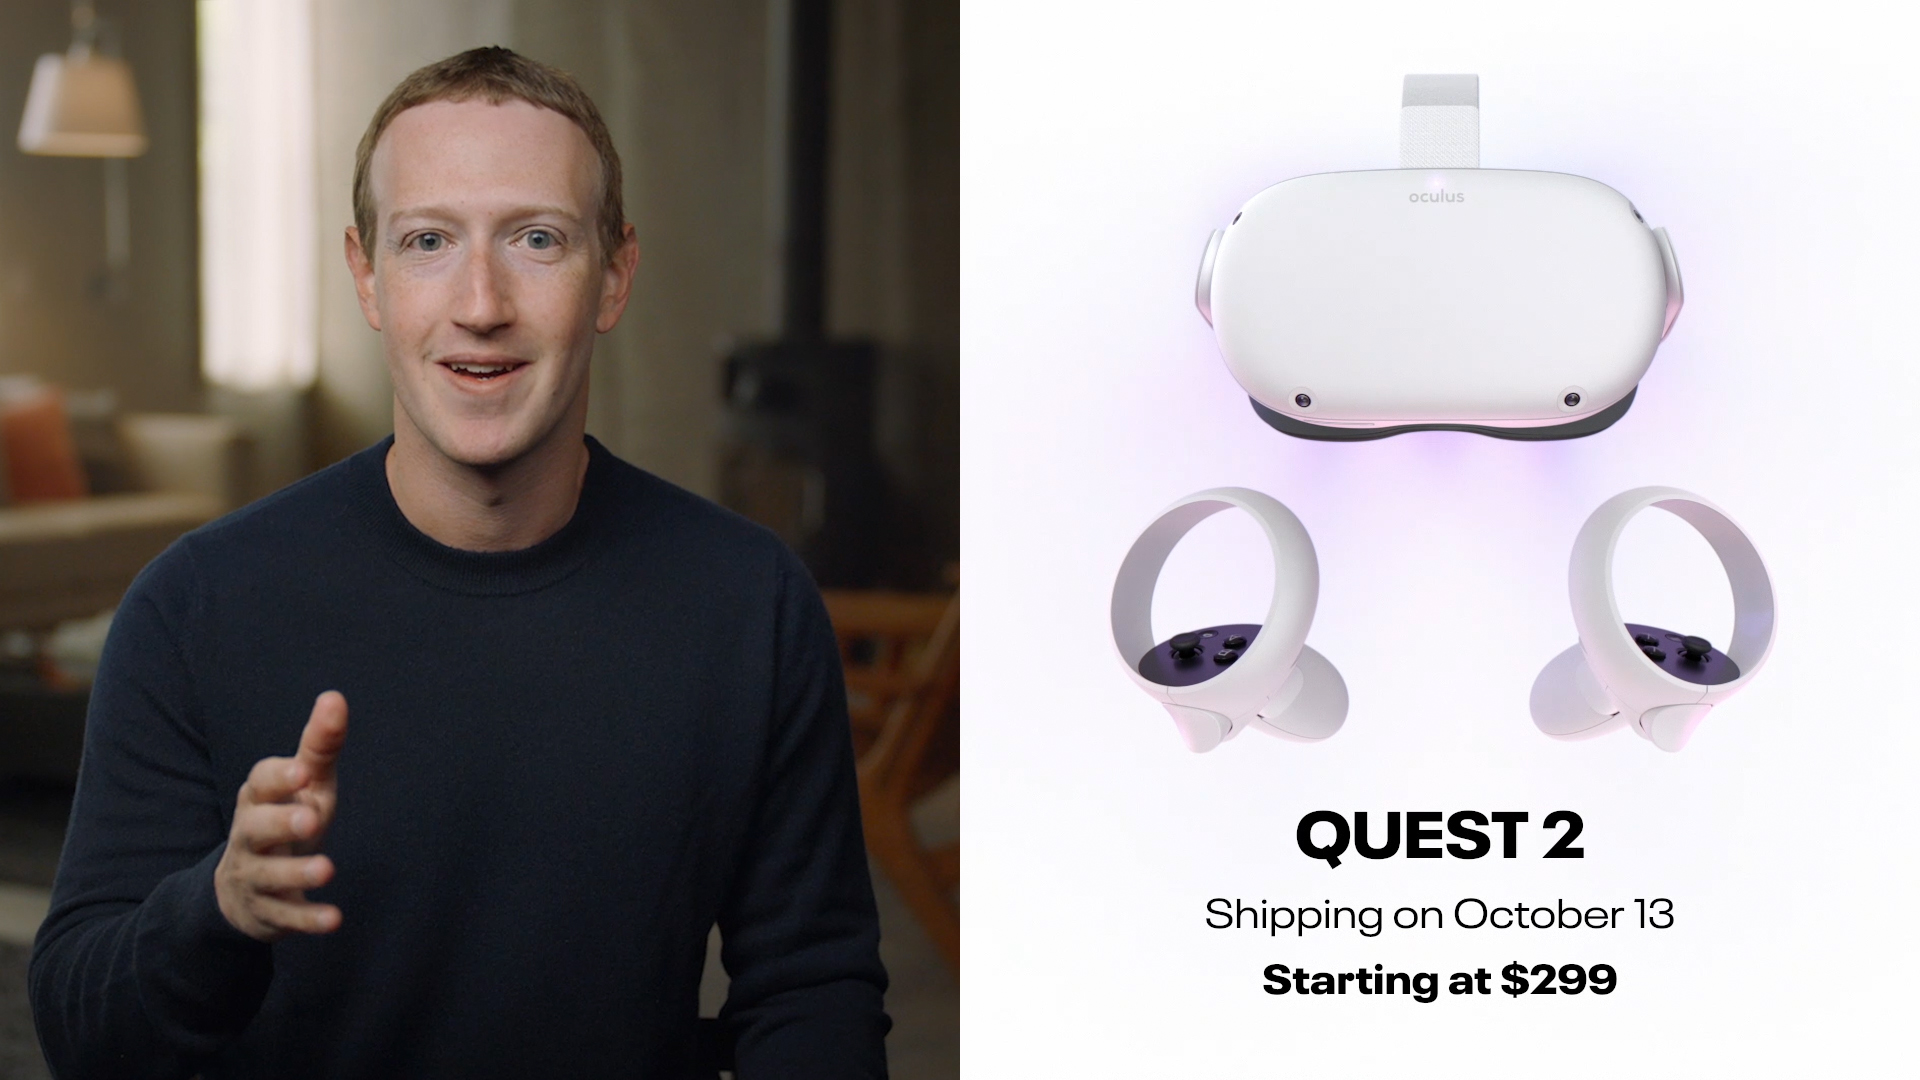 Photo of Mark Zuckerberg from Facebook Connect